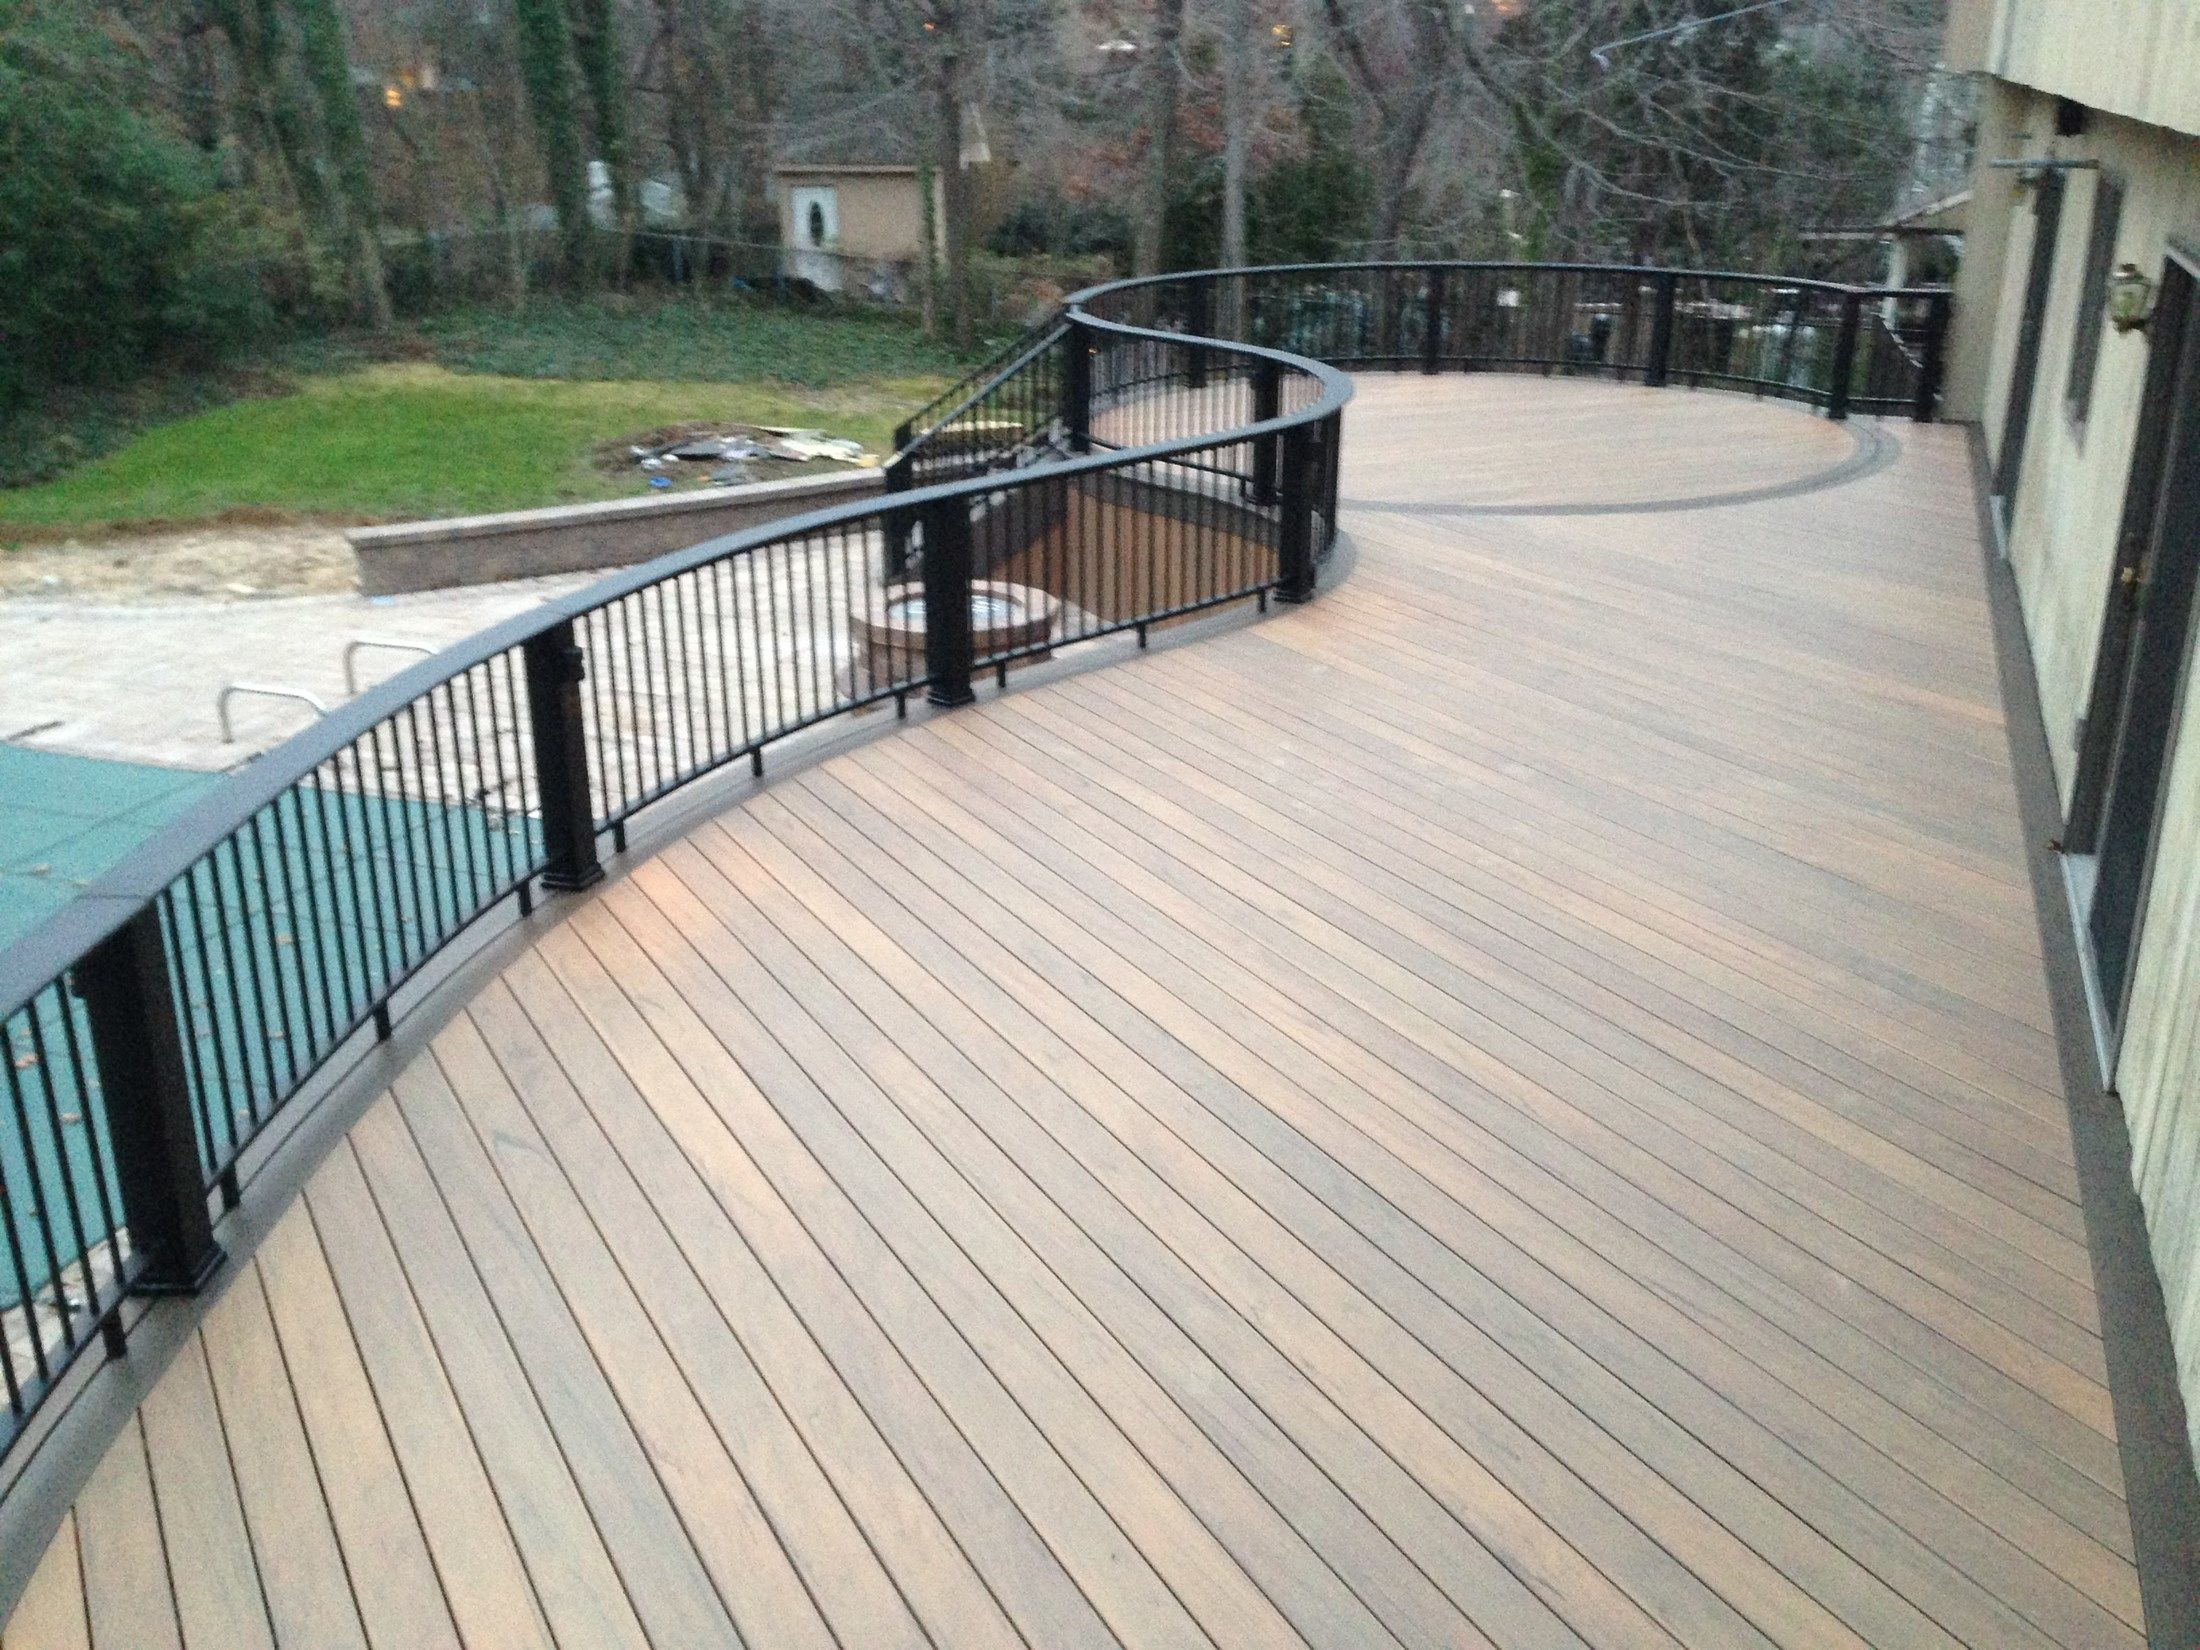 composite decking material review On synthetic deck material